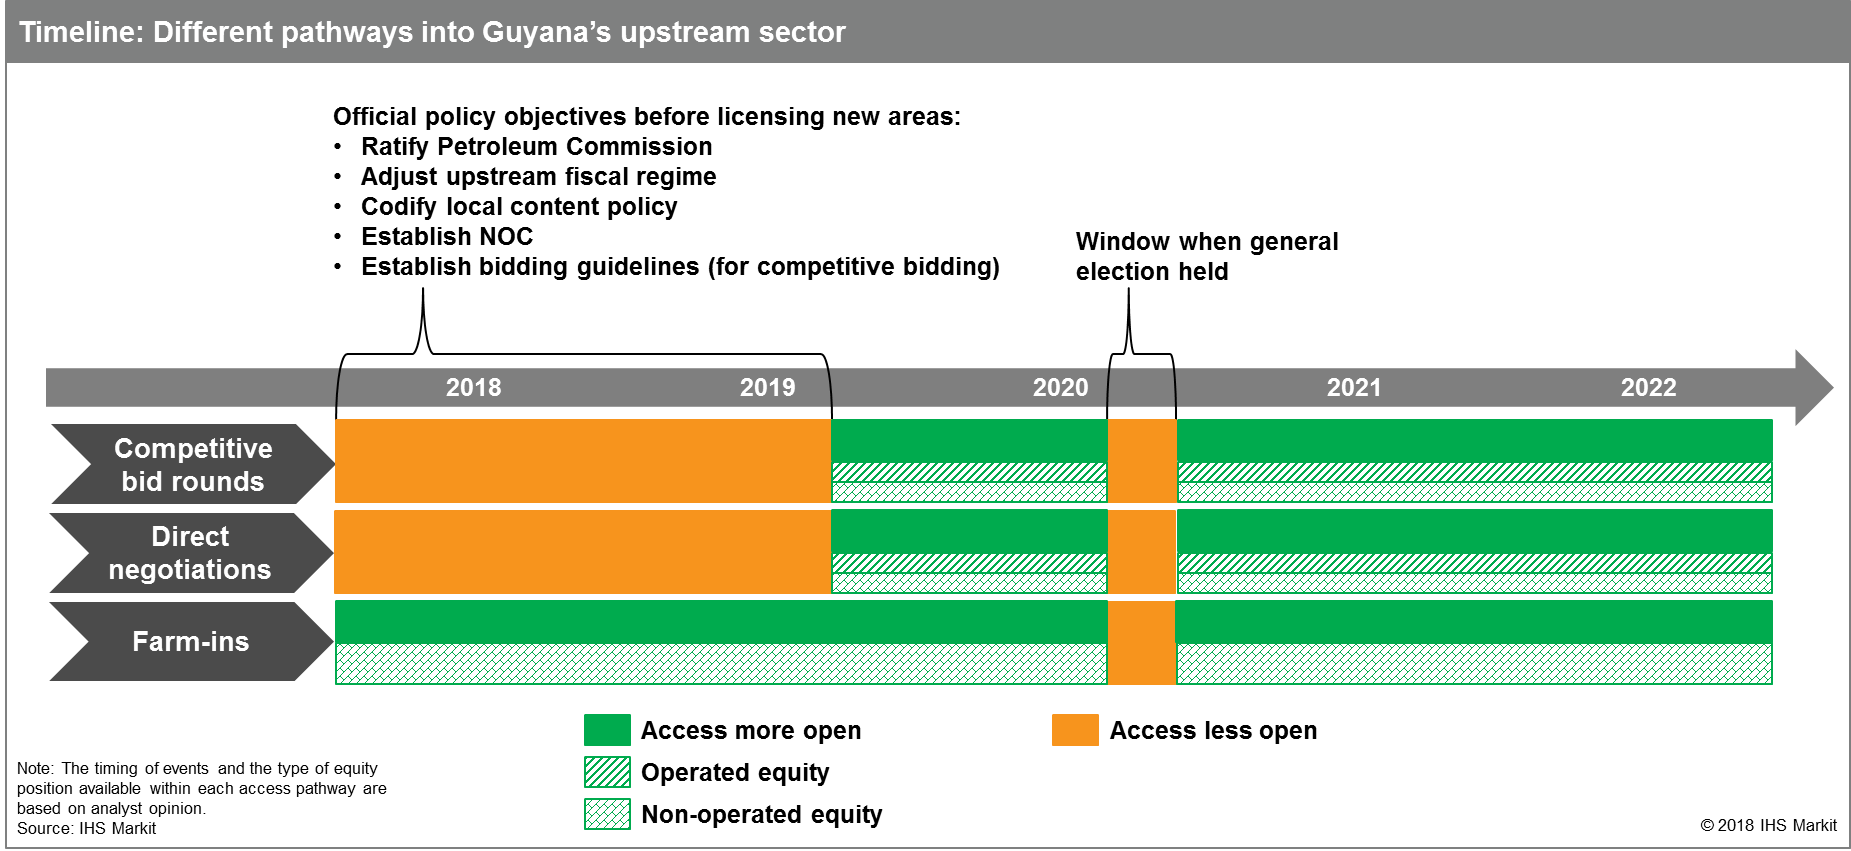 Timeline- Different pathways into Guyana's upstream sector